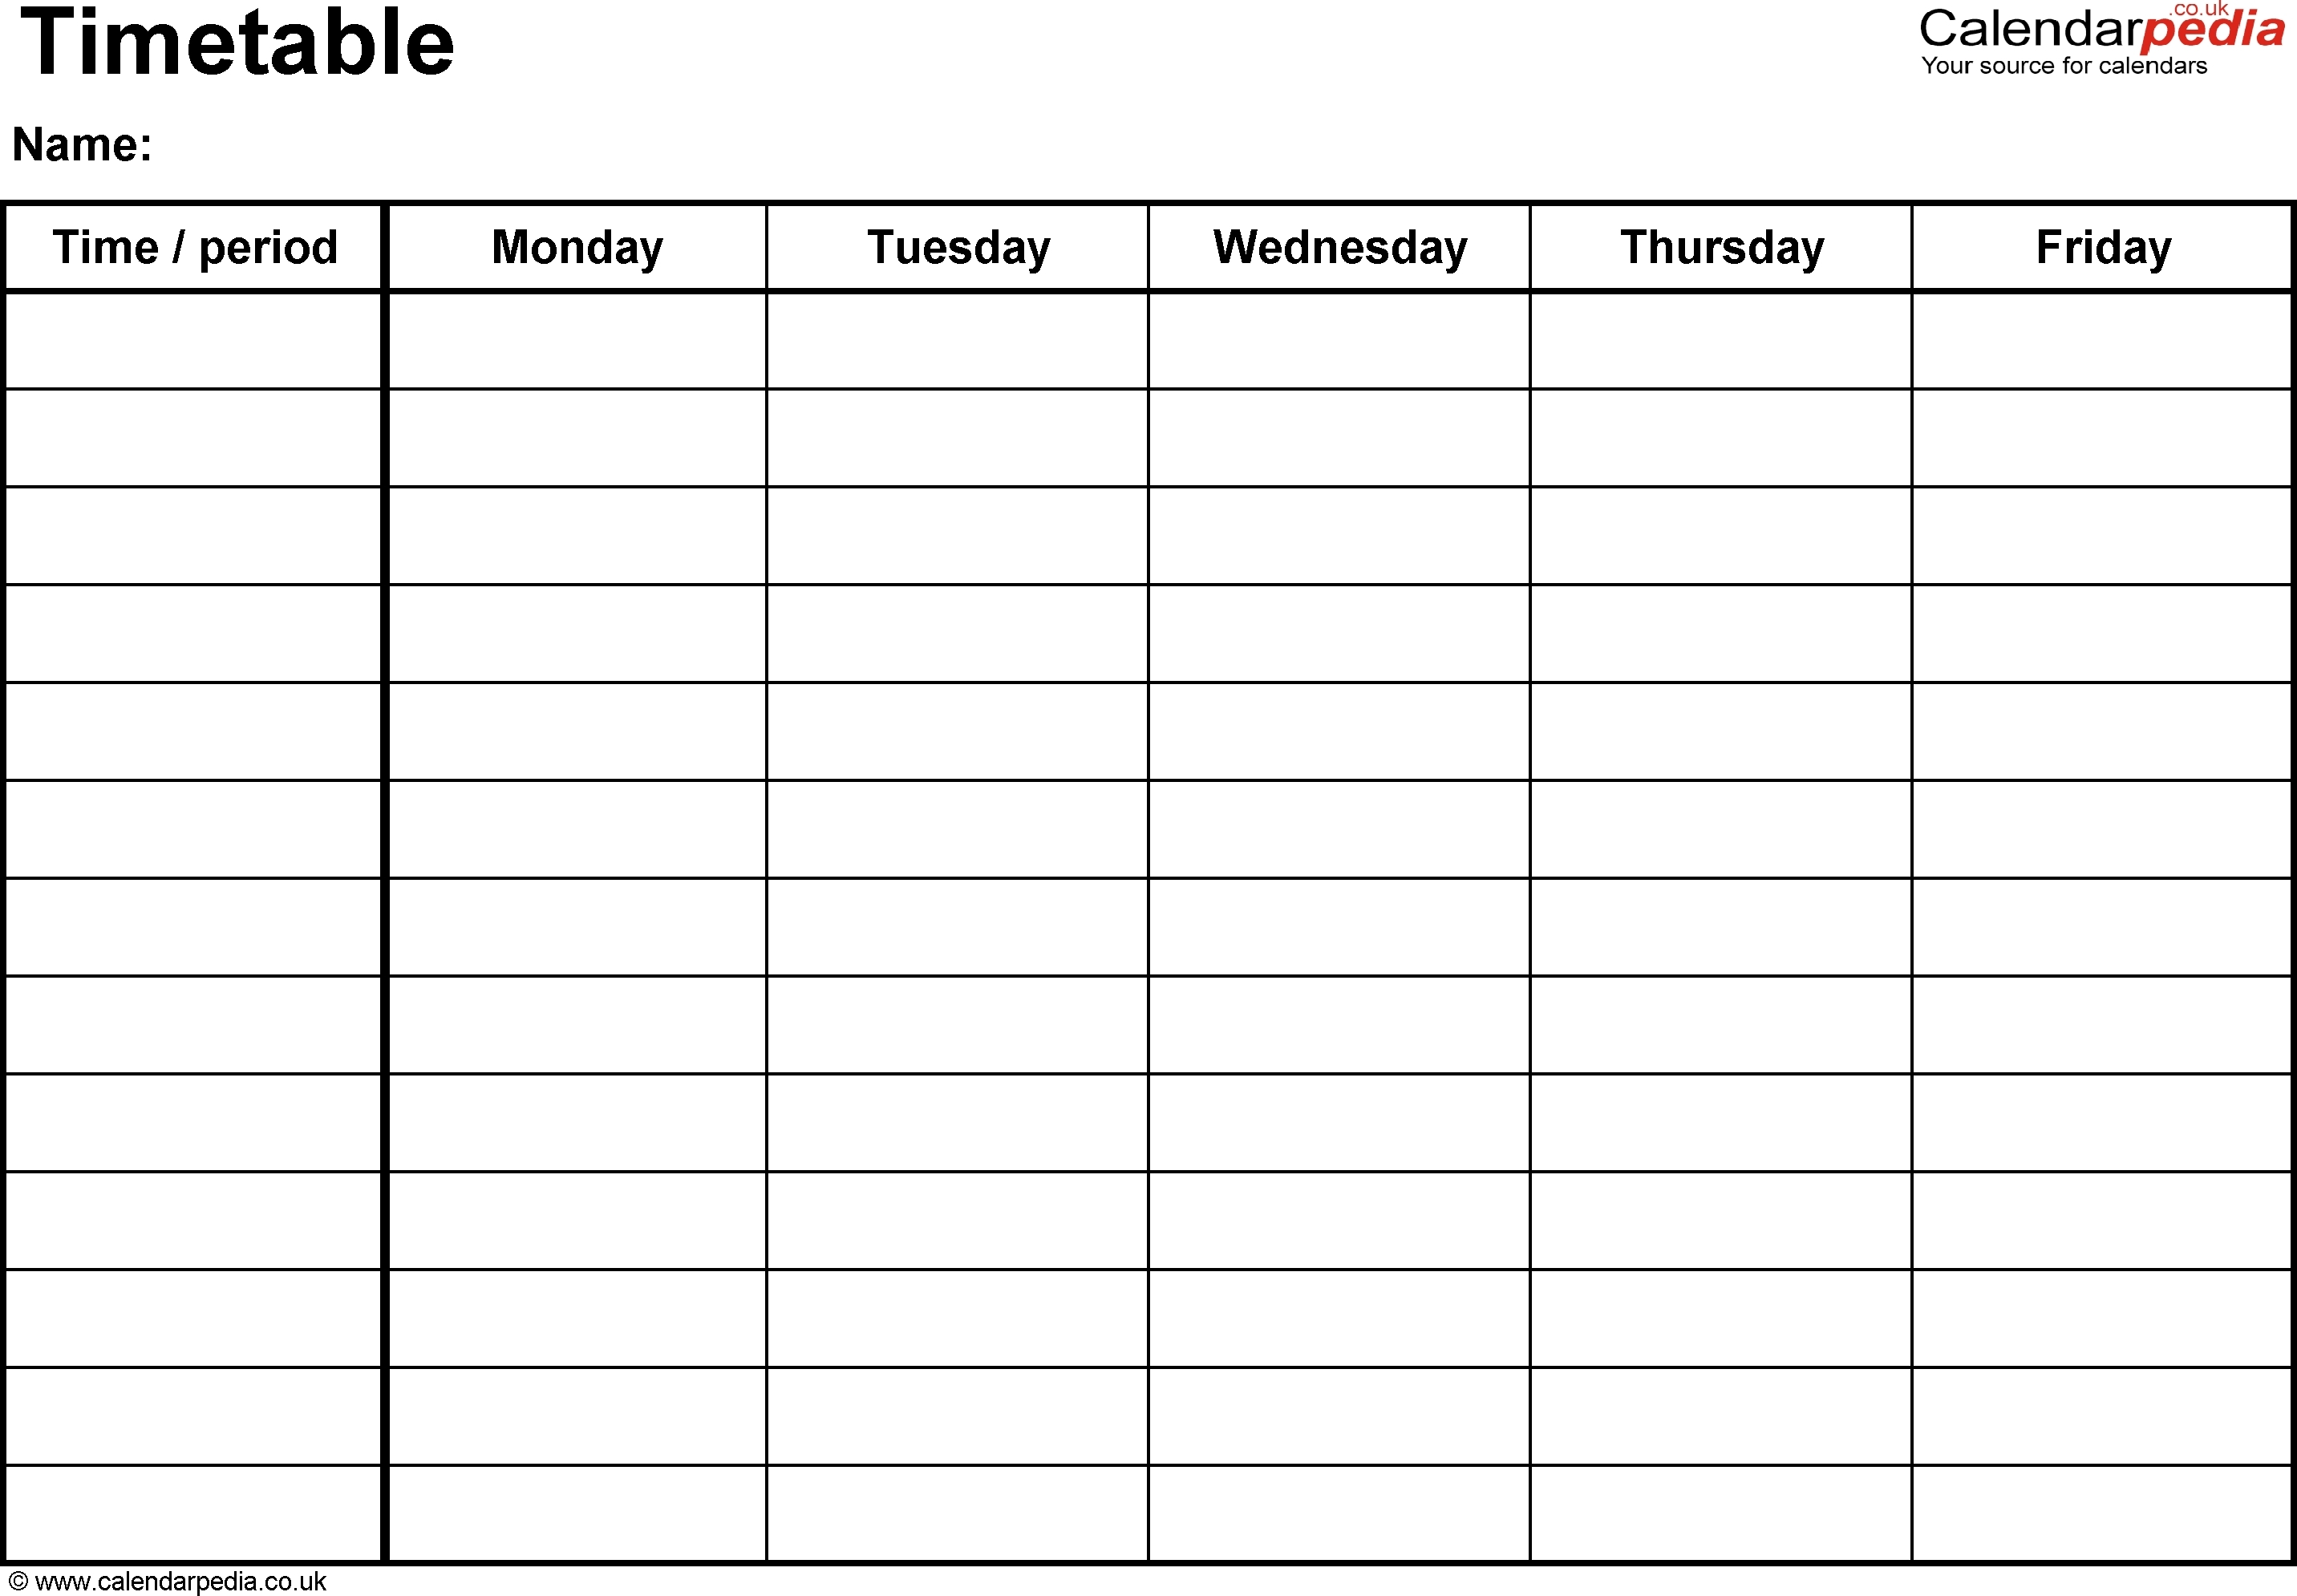 Weekly Schedule Monday Through Friday | Template Calendar Printable inside Monday Though Friday Timed Schedule